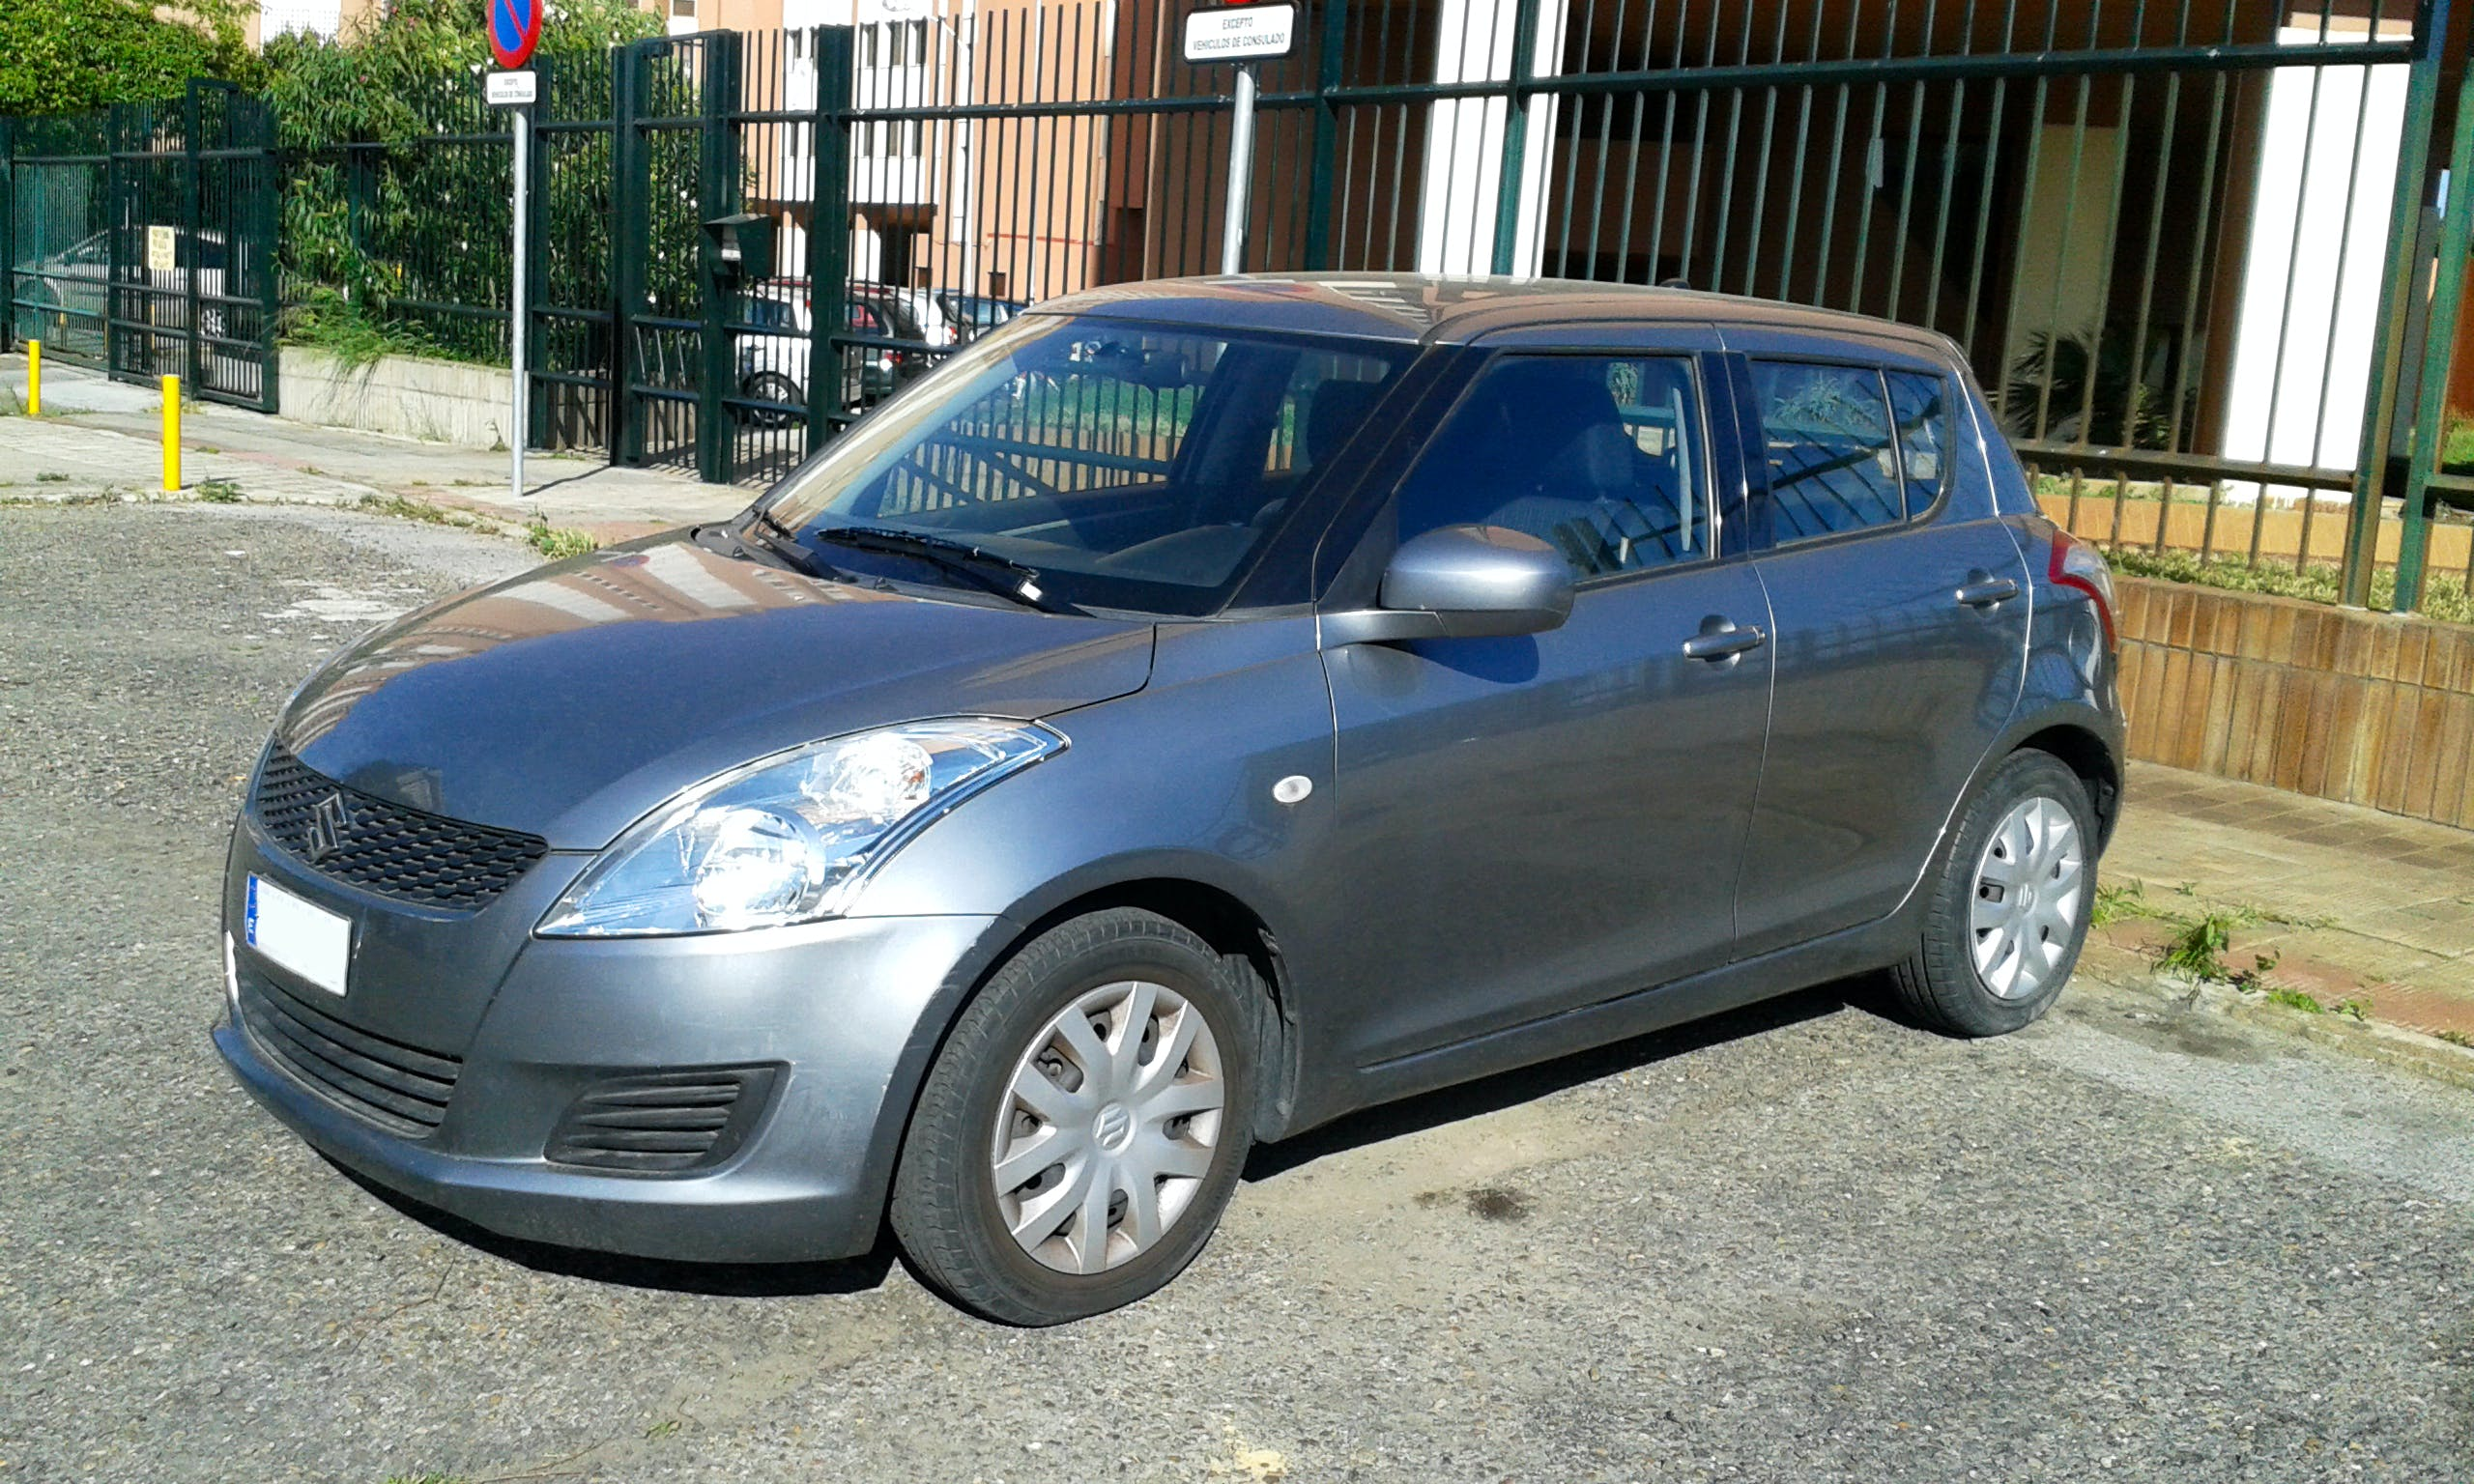 Suzuki swift, 2011, Gasolina